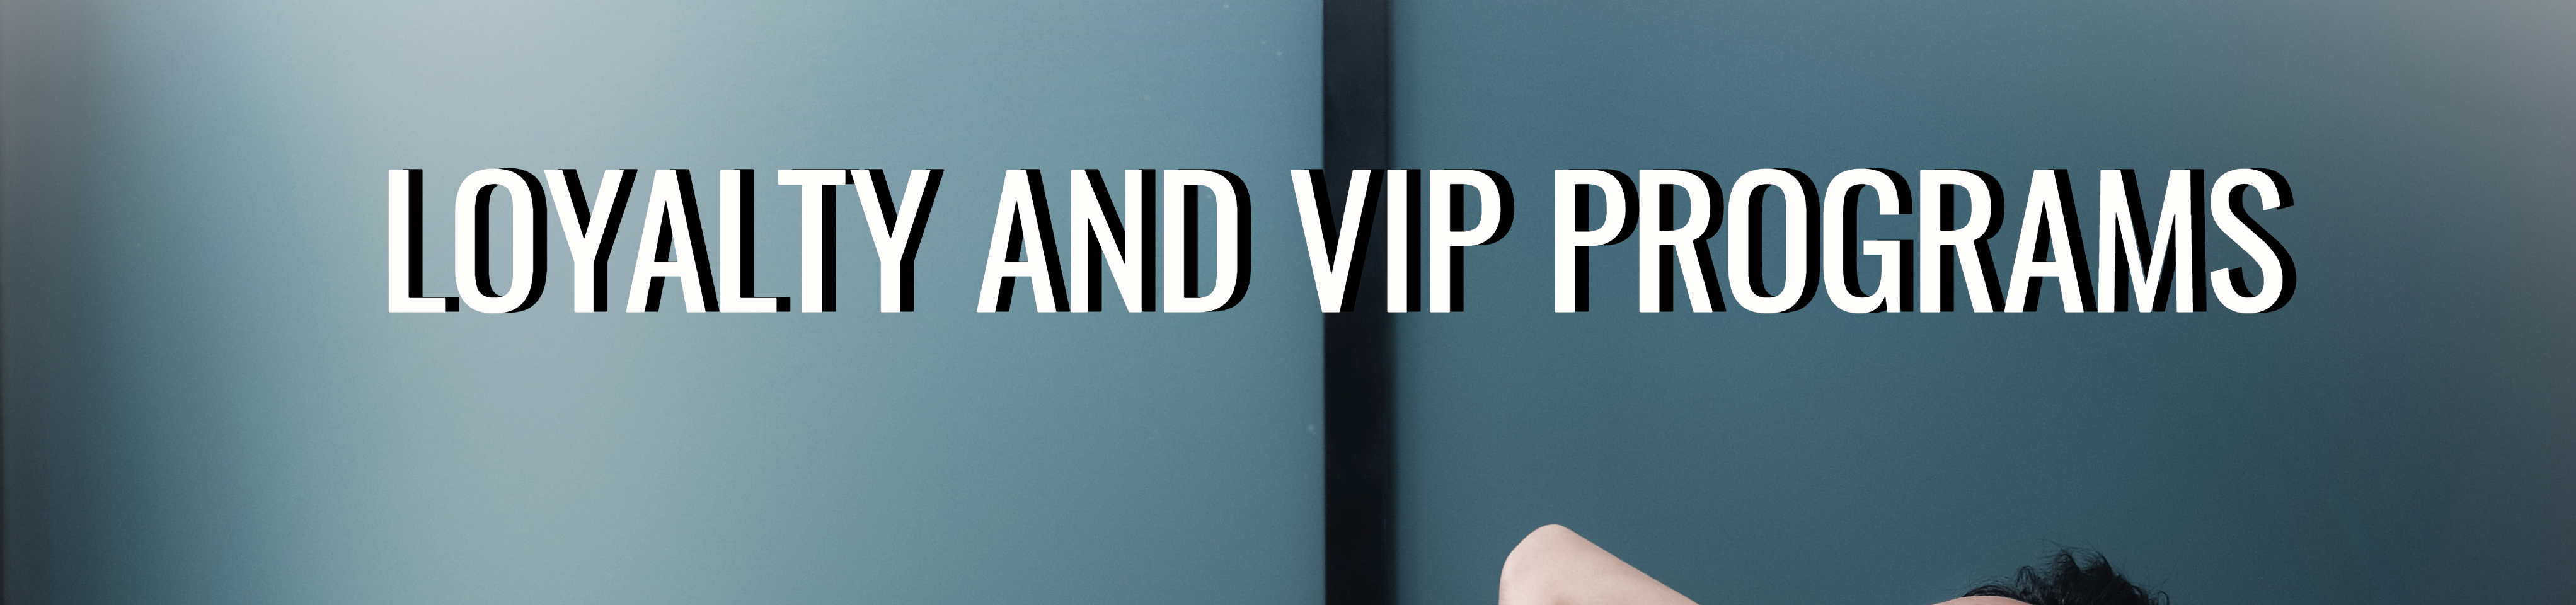 Loyalty vs VIP: Which One Is Worth Your Time?